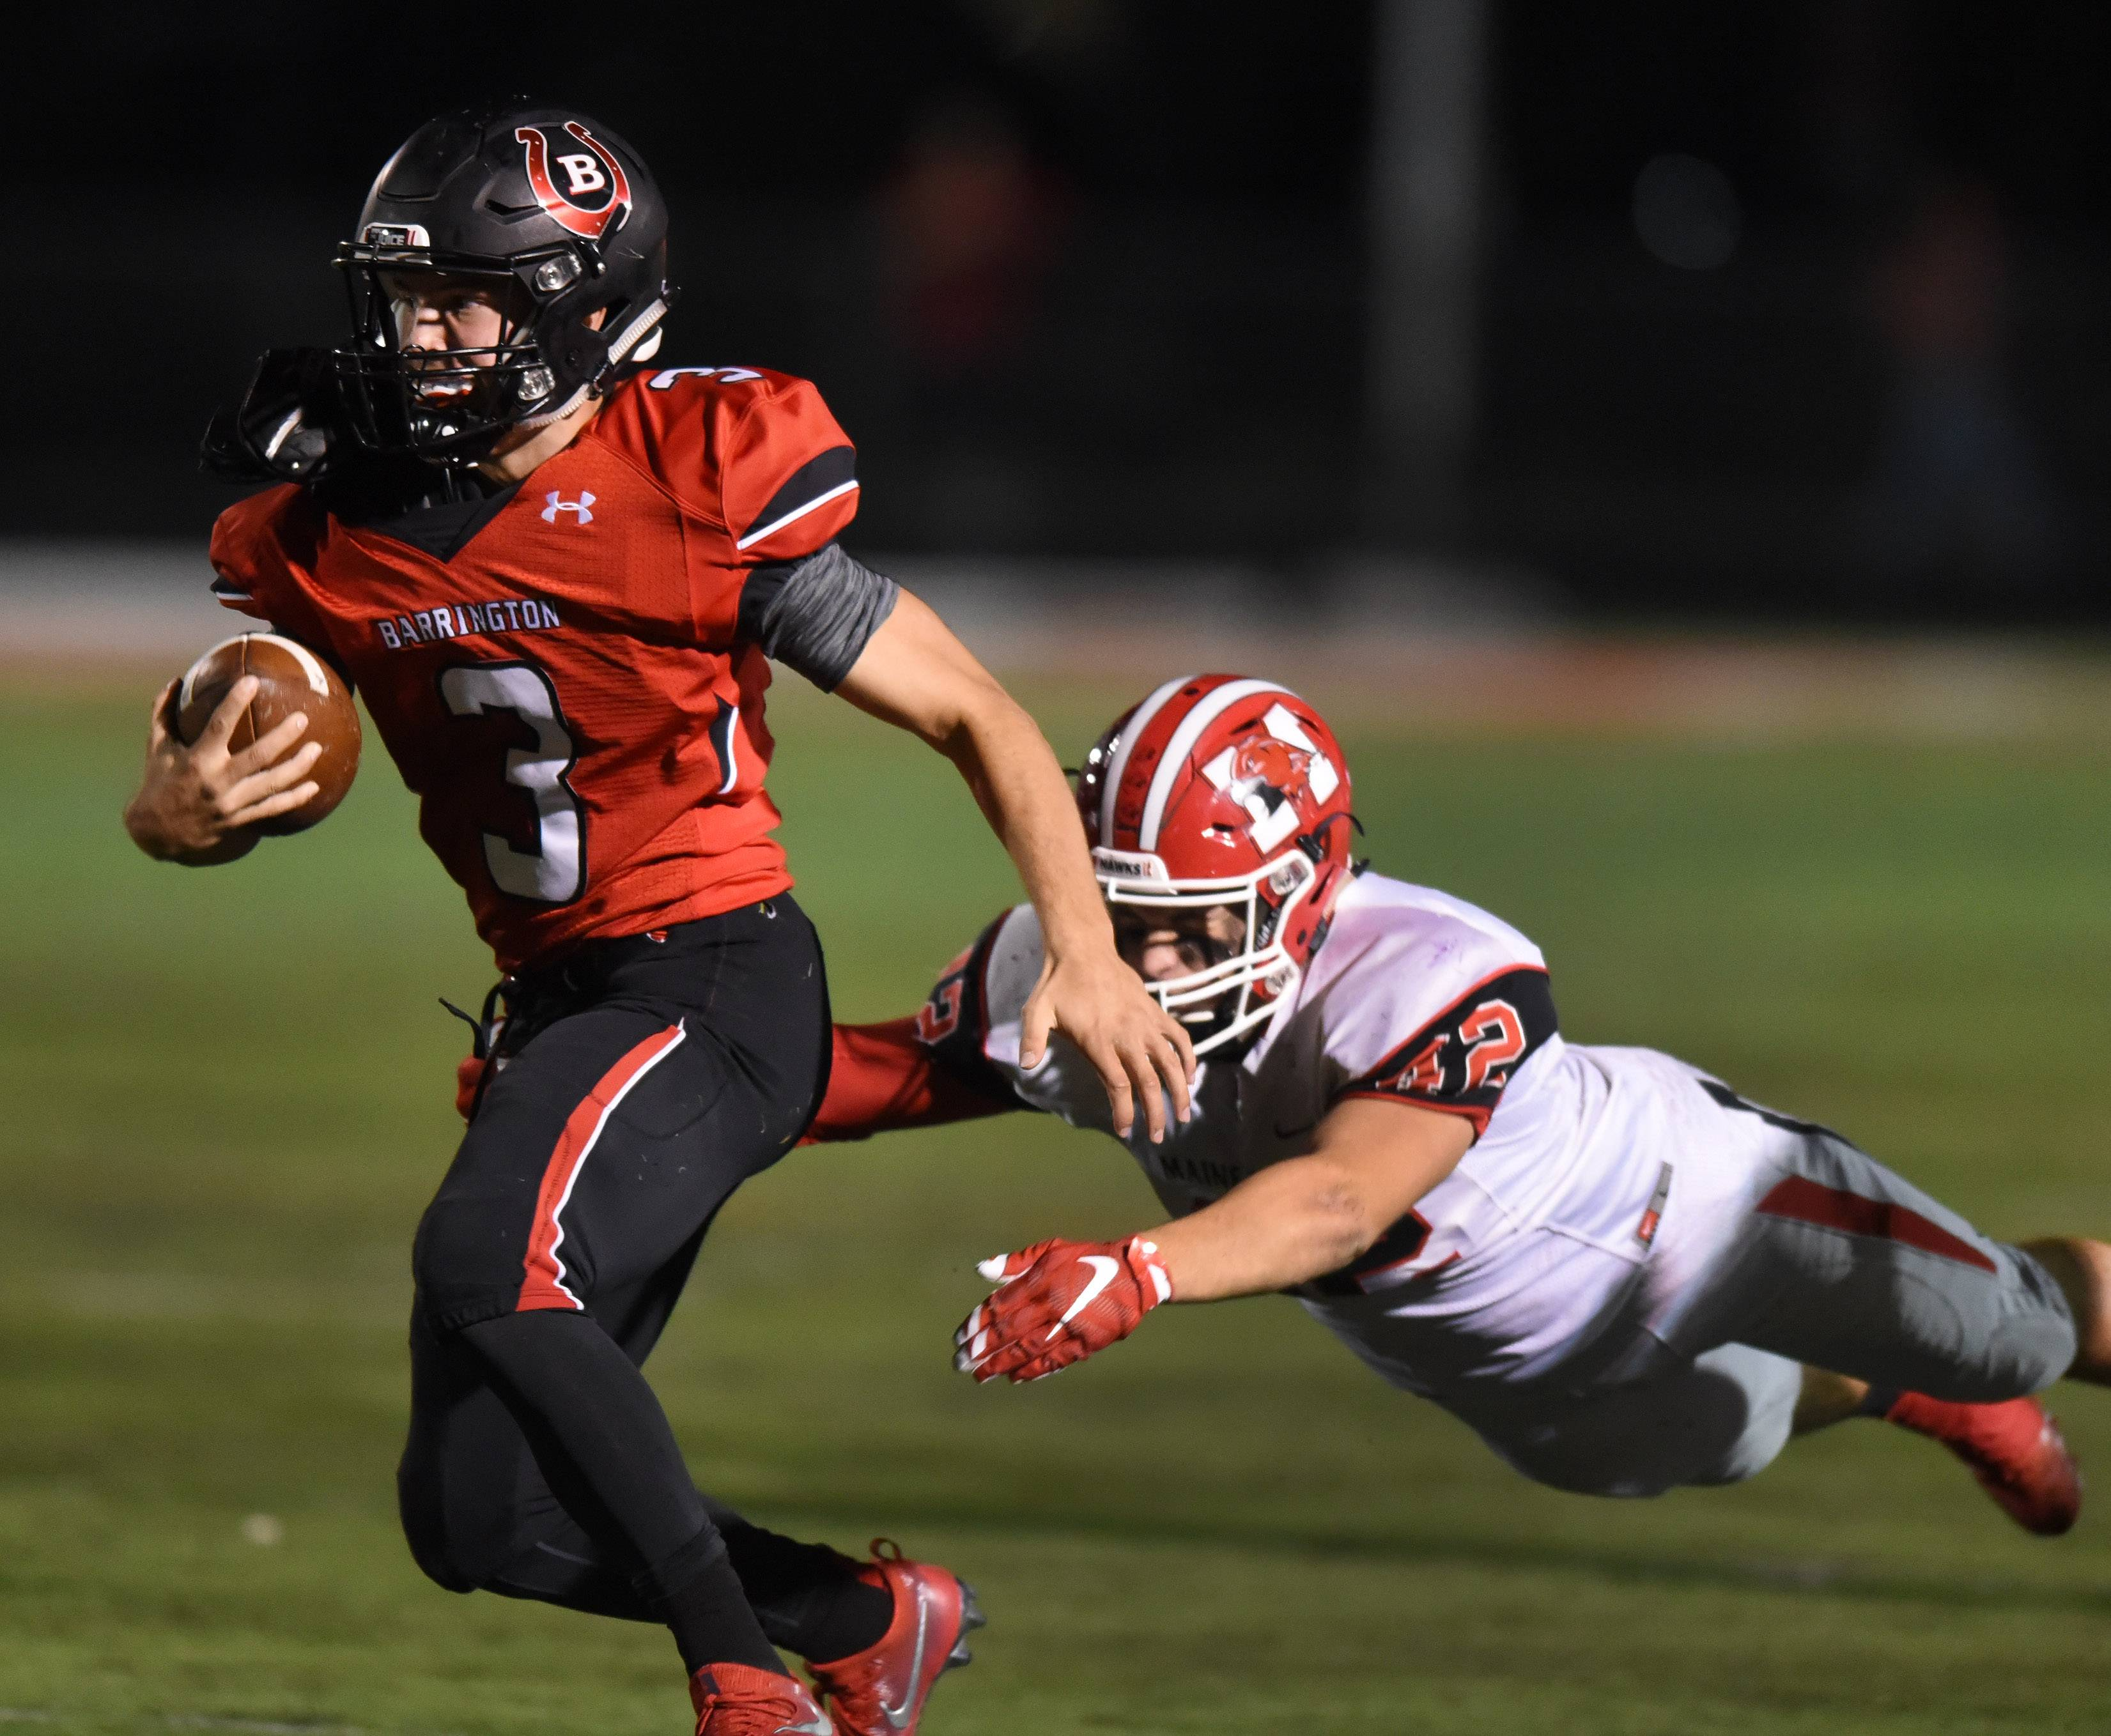 Barrington quarterback Ray Niro picks up yardage in the Broncos' victory over Maine South.